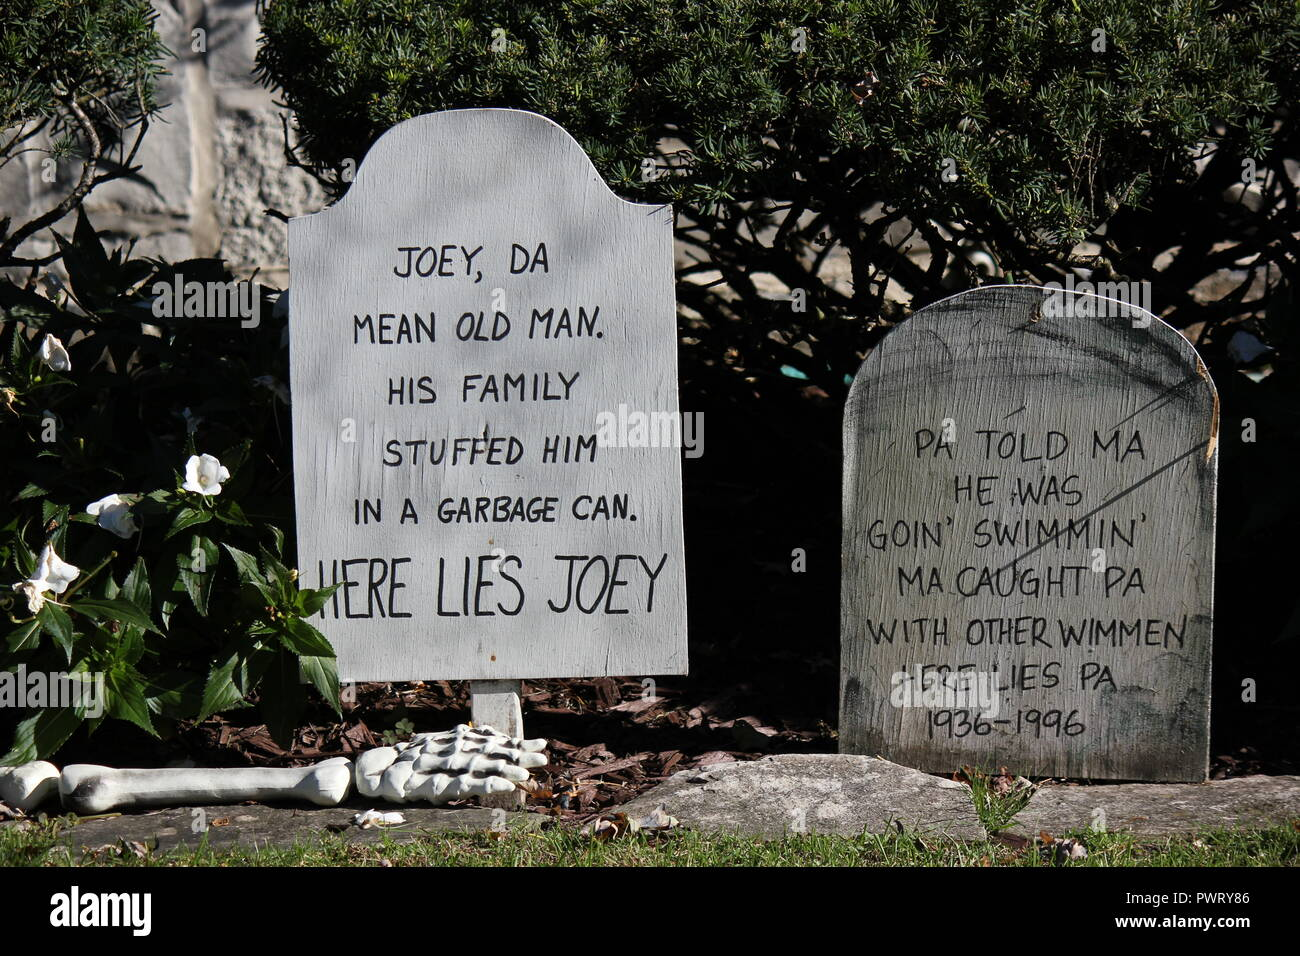 Two Handmade handwritten tombstones posing as Halloween lawn decorations with a scary epitaph. - Stock Image